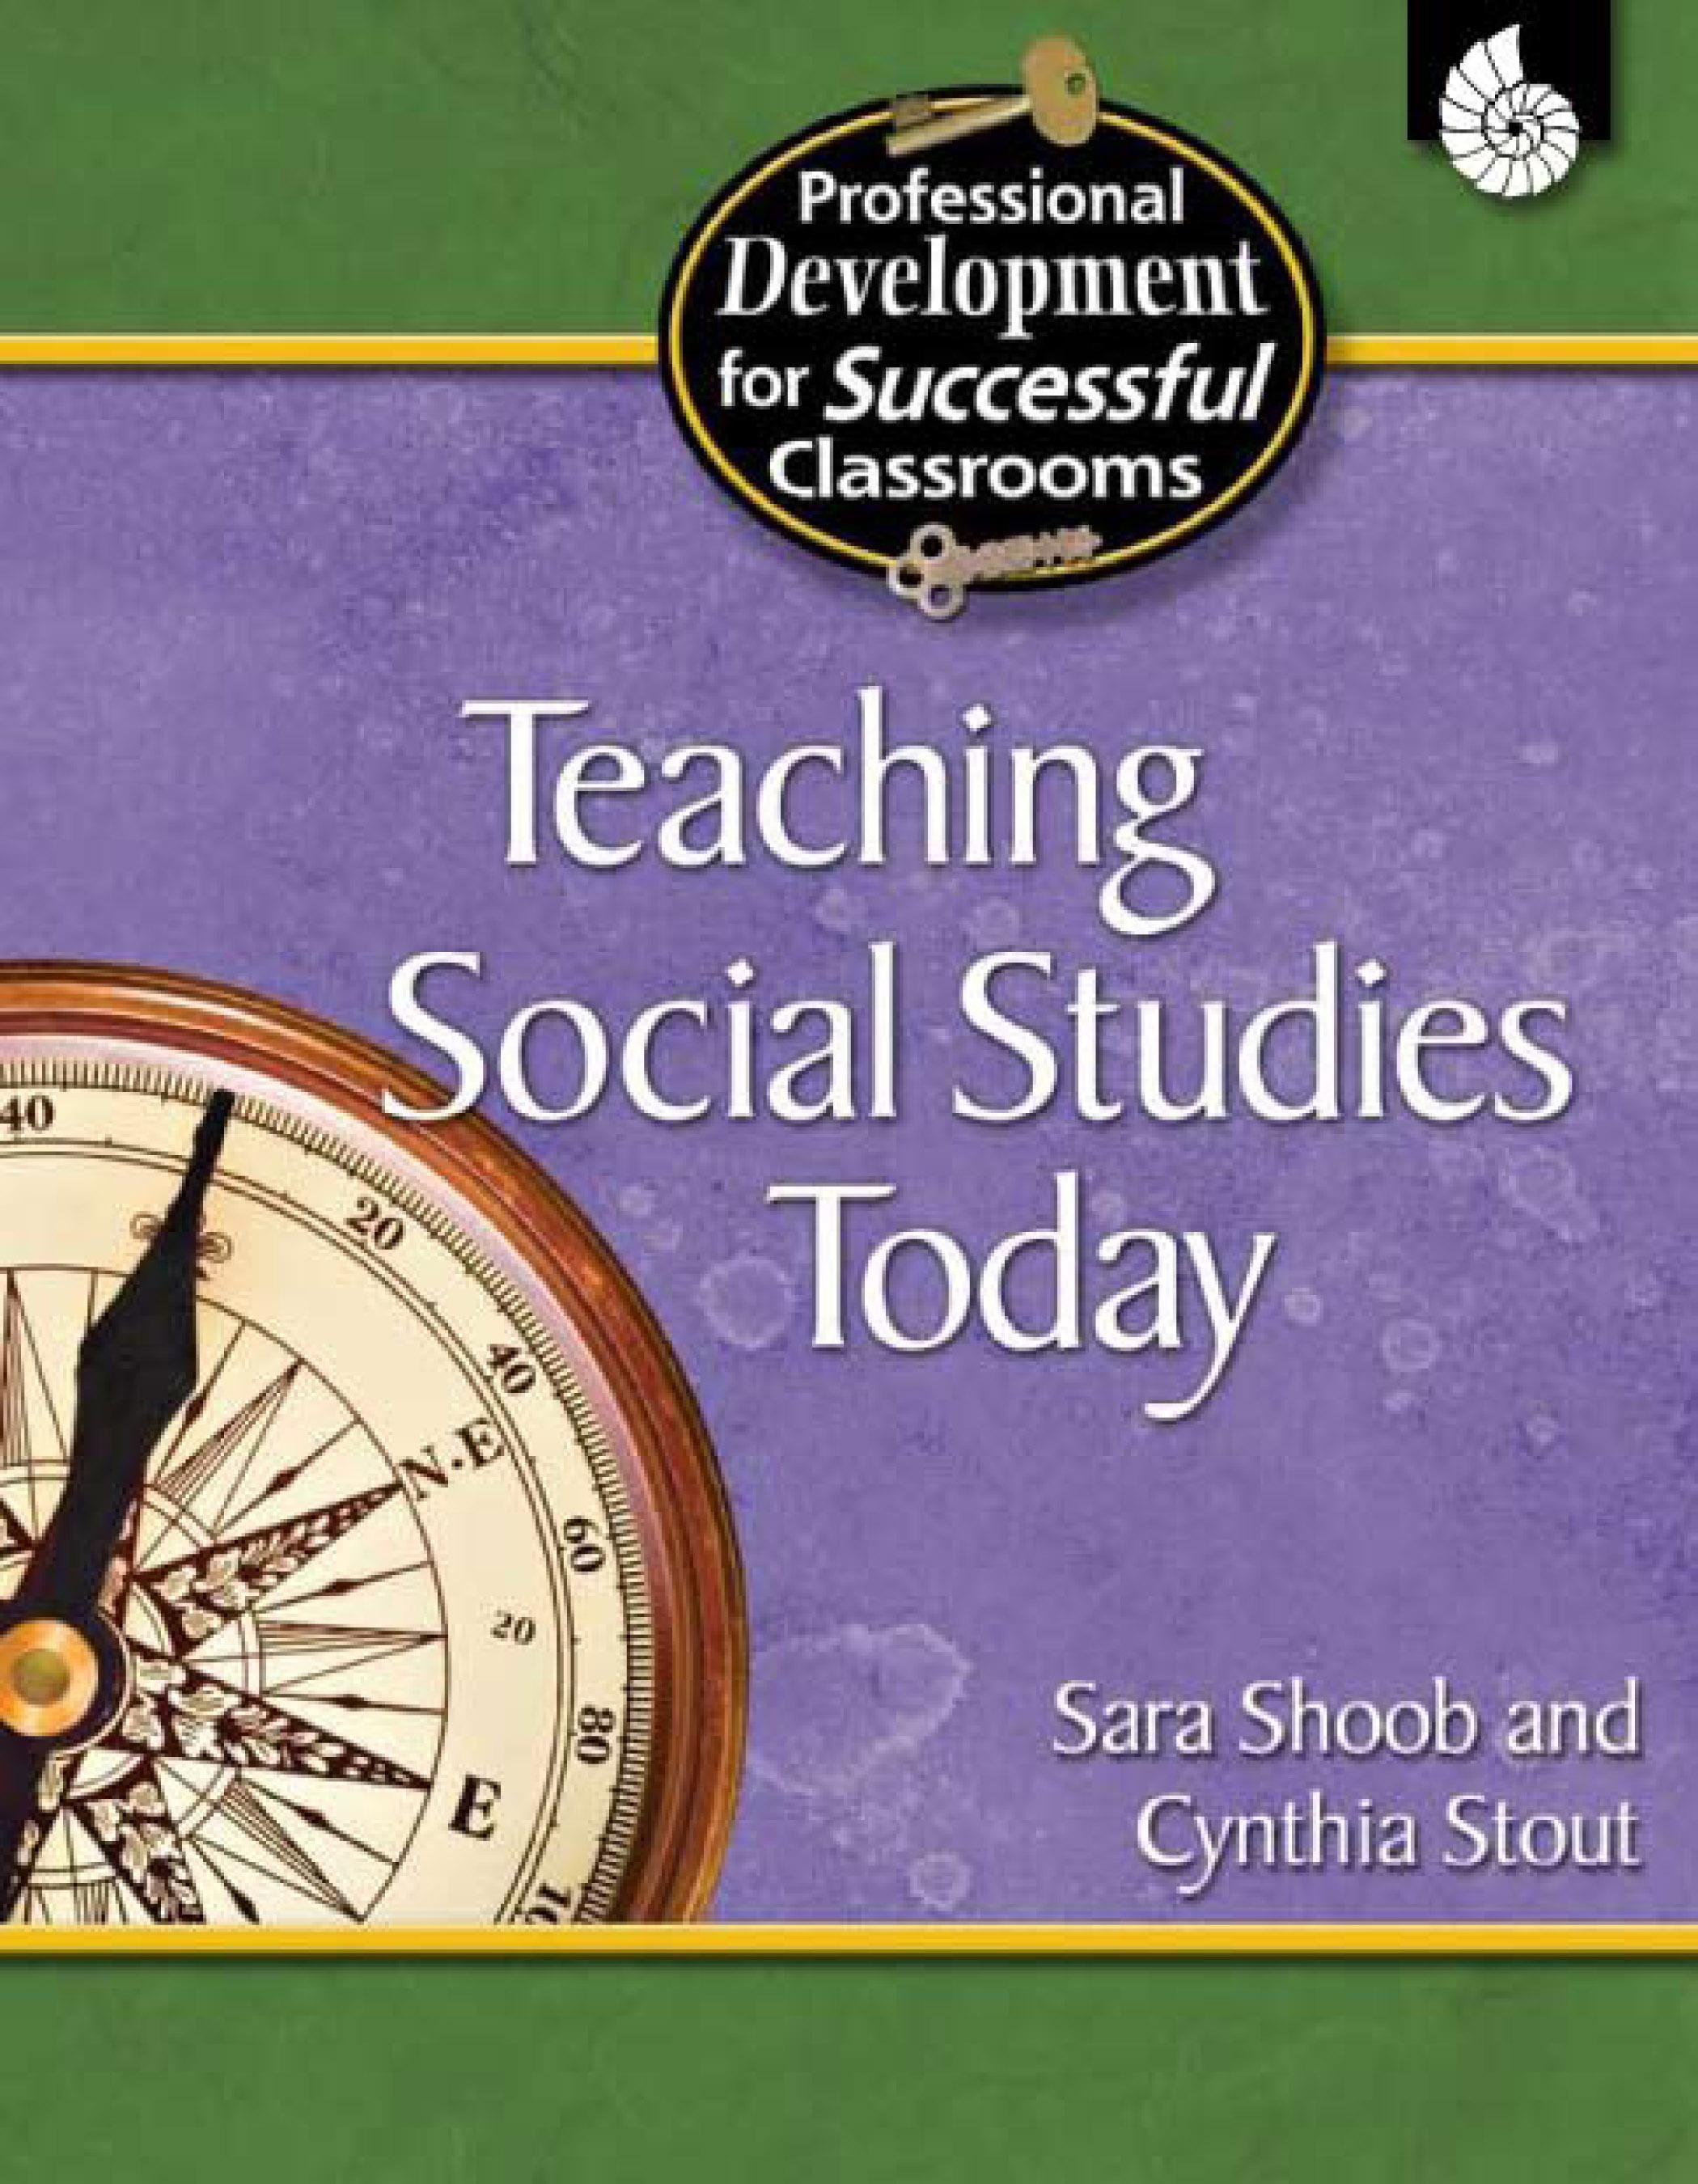 Teaching Social Studies Today Grades K-12